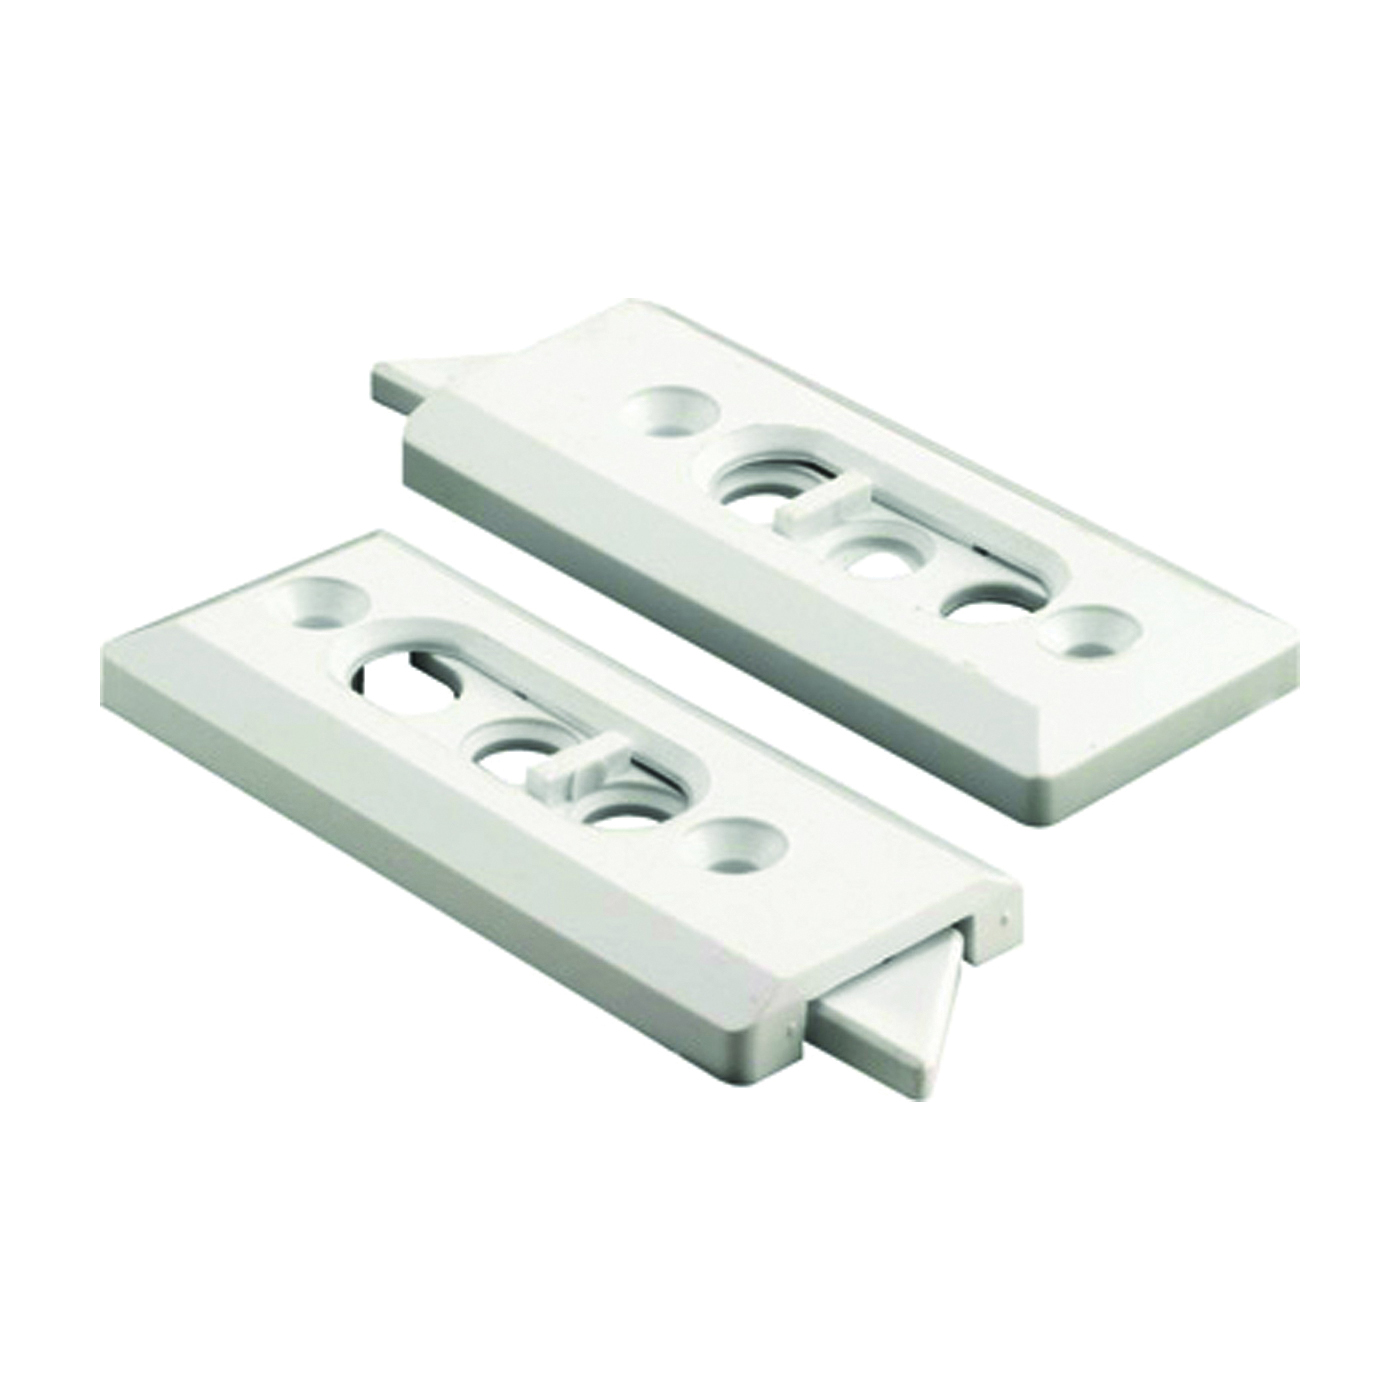 Picture of Prime-Line F 2728 Tilt Latch, Plastic, White